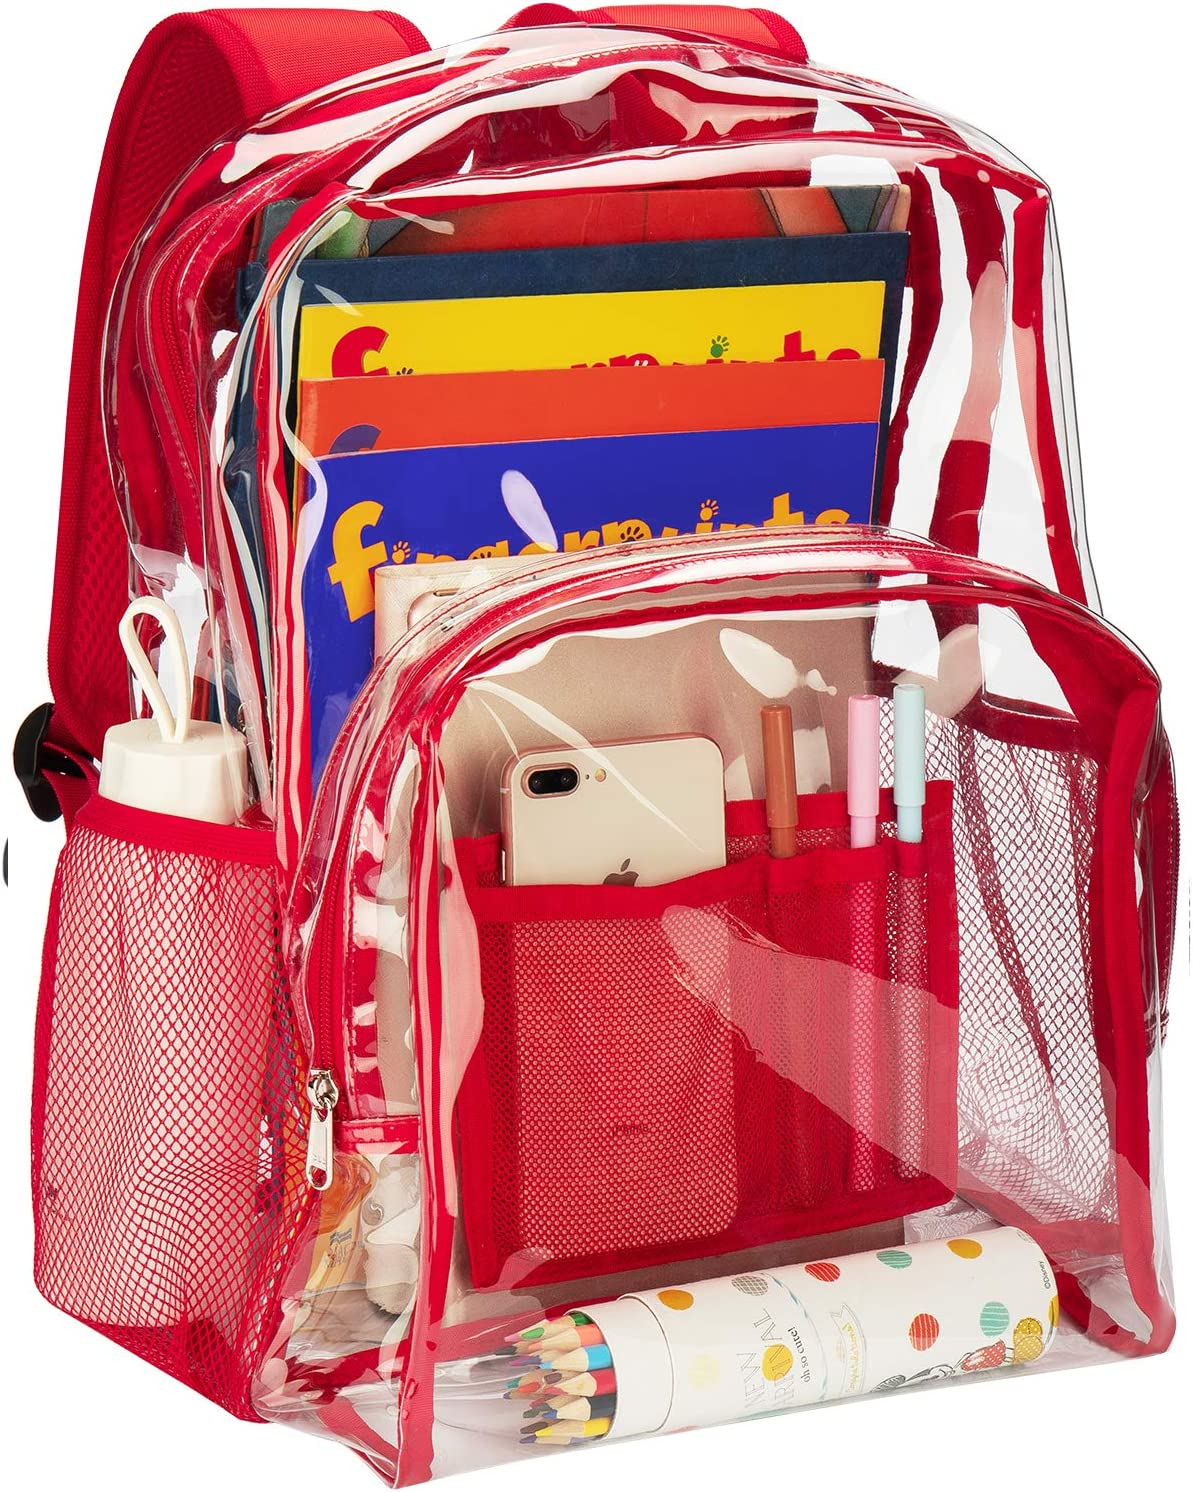 Red Vorspack Clear Backpack Heavy Duty PVC Transparent School Backpack with Reinforced Strap Stitches /& Large Capacity for College Workplace Security